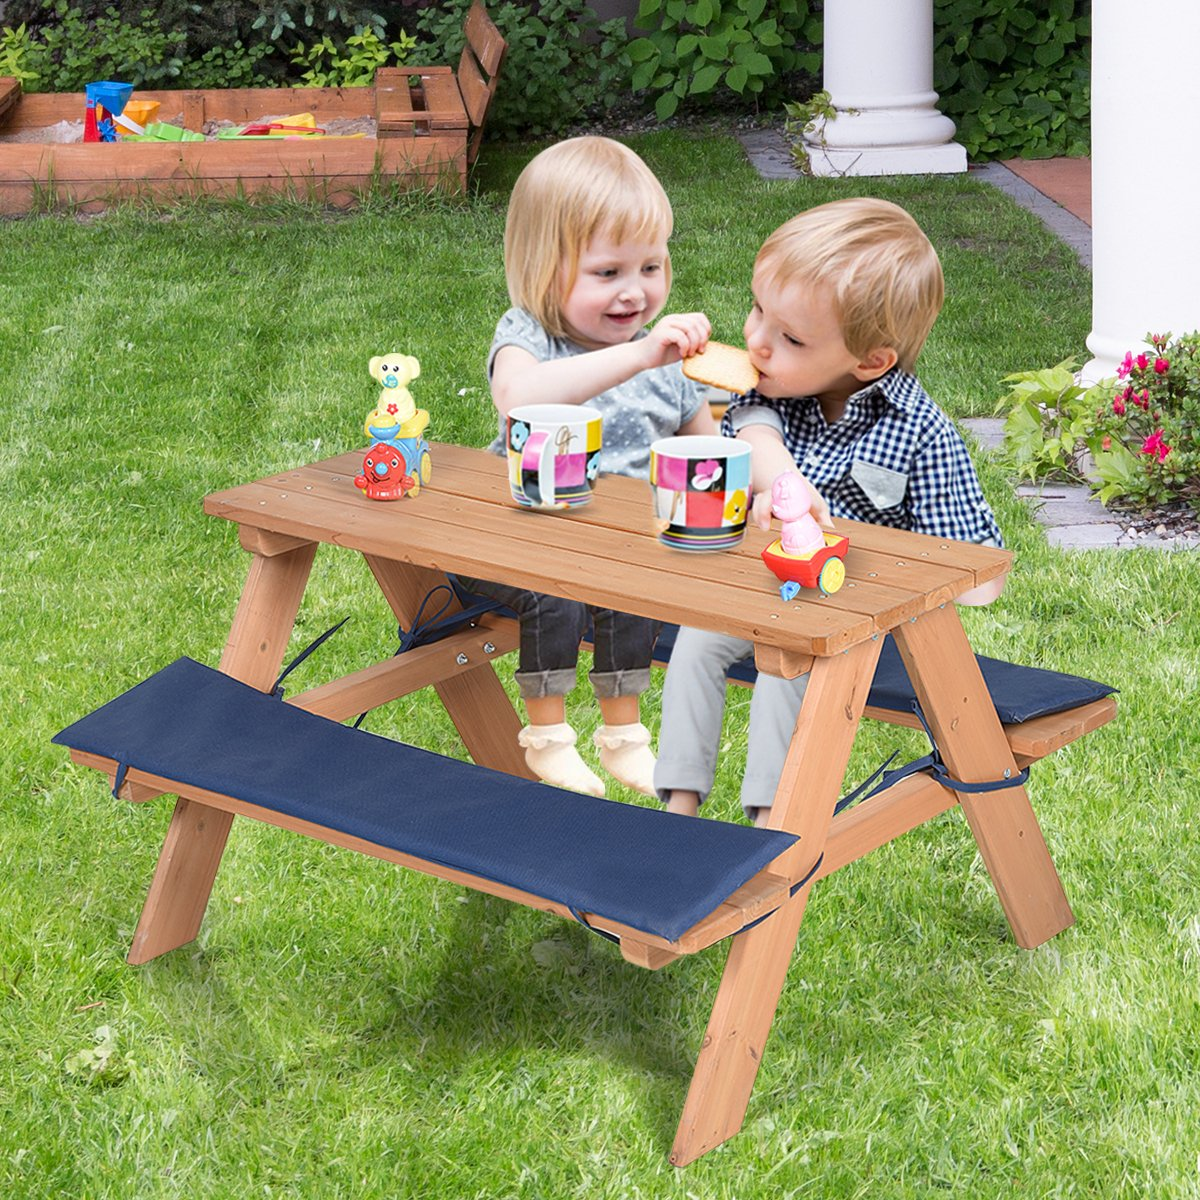 Costzon Kids Picnic Table, Solid Wood Bench Set up to 4 Seat, Unfinished - Choose Your Favorite Finish Color- Children Play Table Outdoor Garden Yard w/Padded Cushions by Costzon